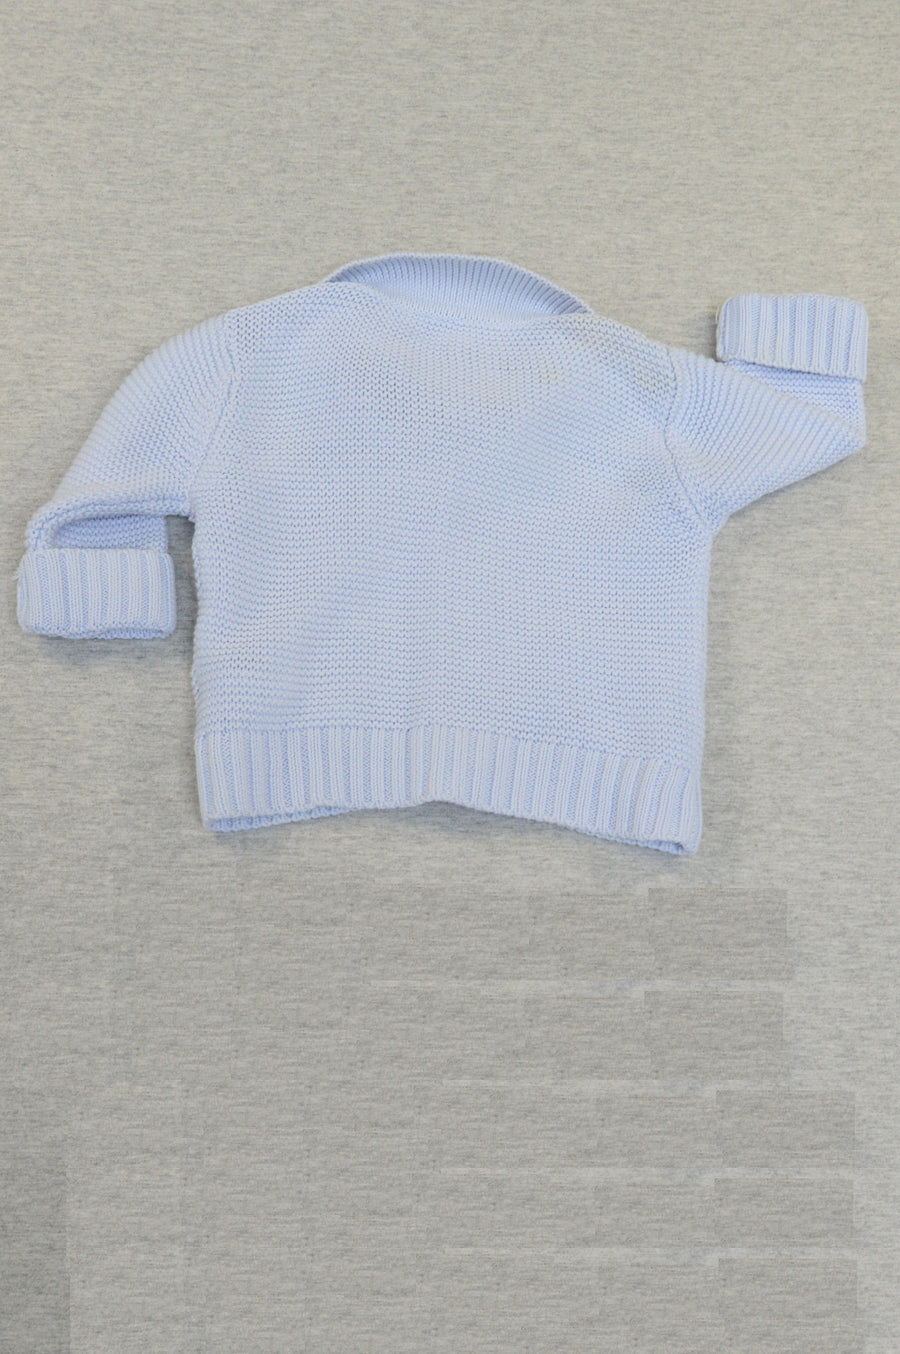 Tartine et Chocolat baby blue knitted cardigan, size 3m